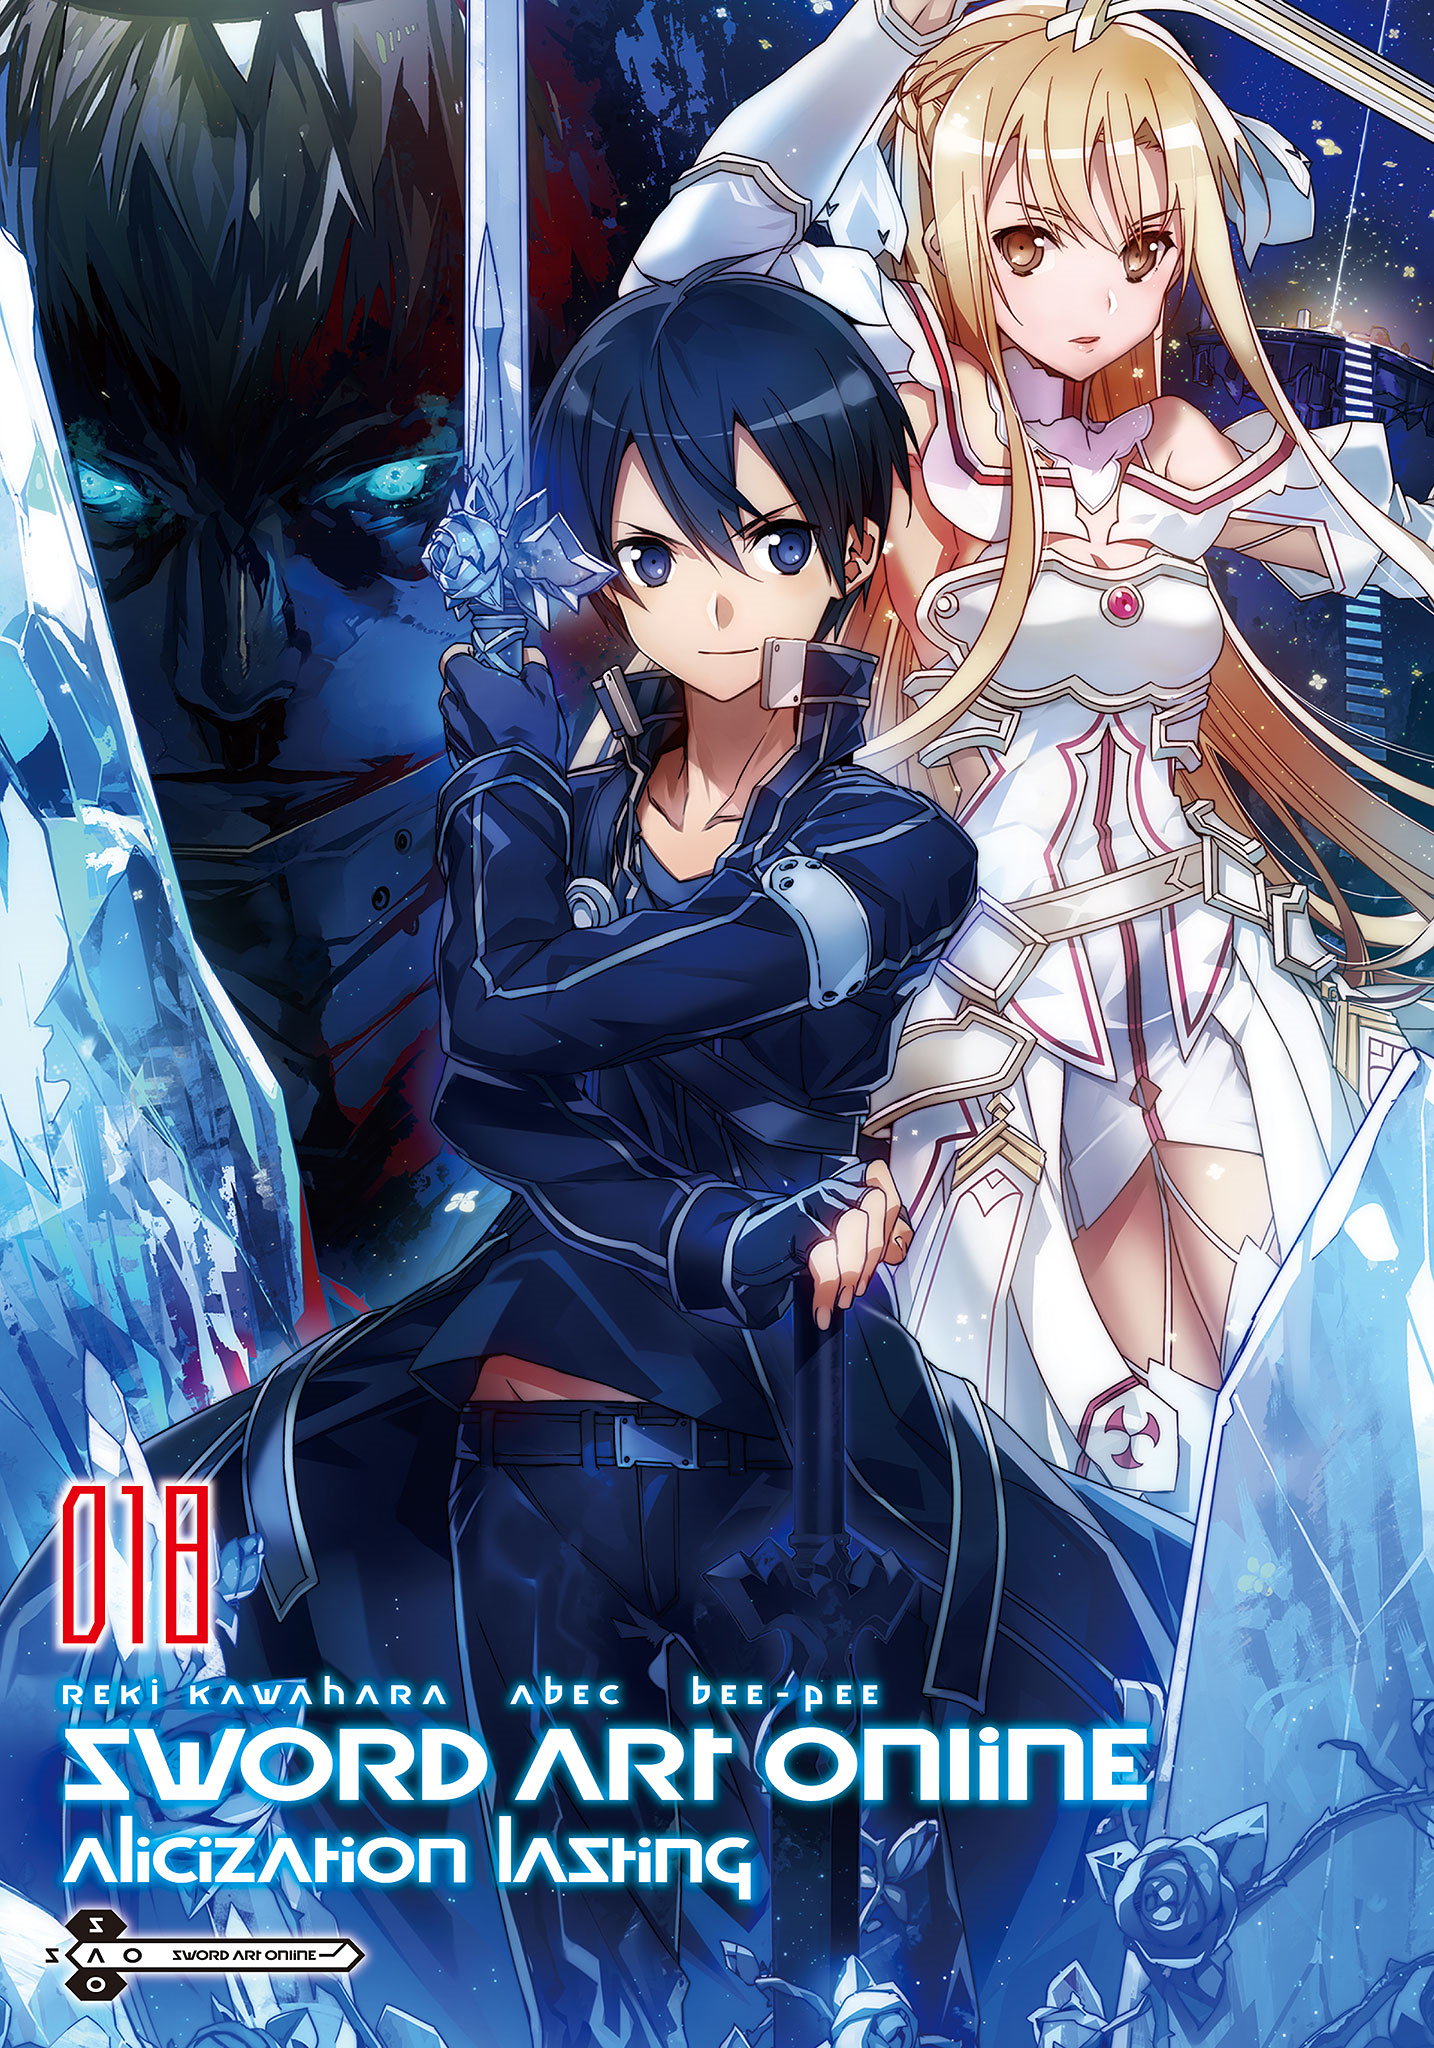 https://vignette.wikia.nocookie.net/swordartonline/images/5/5c/Vol_18_-_001.png/revision/latest?cb=20160911130048